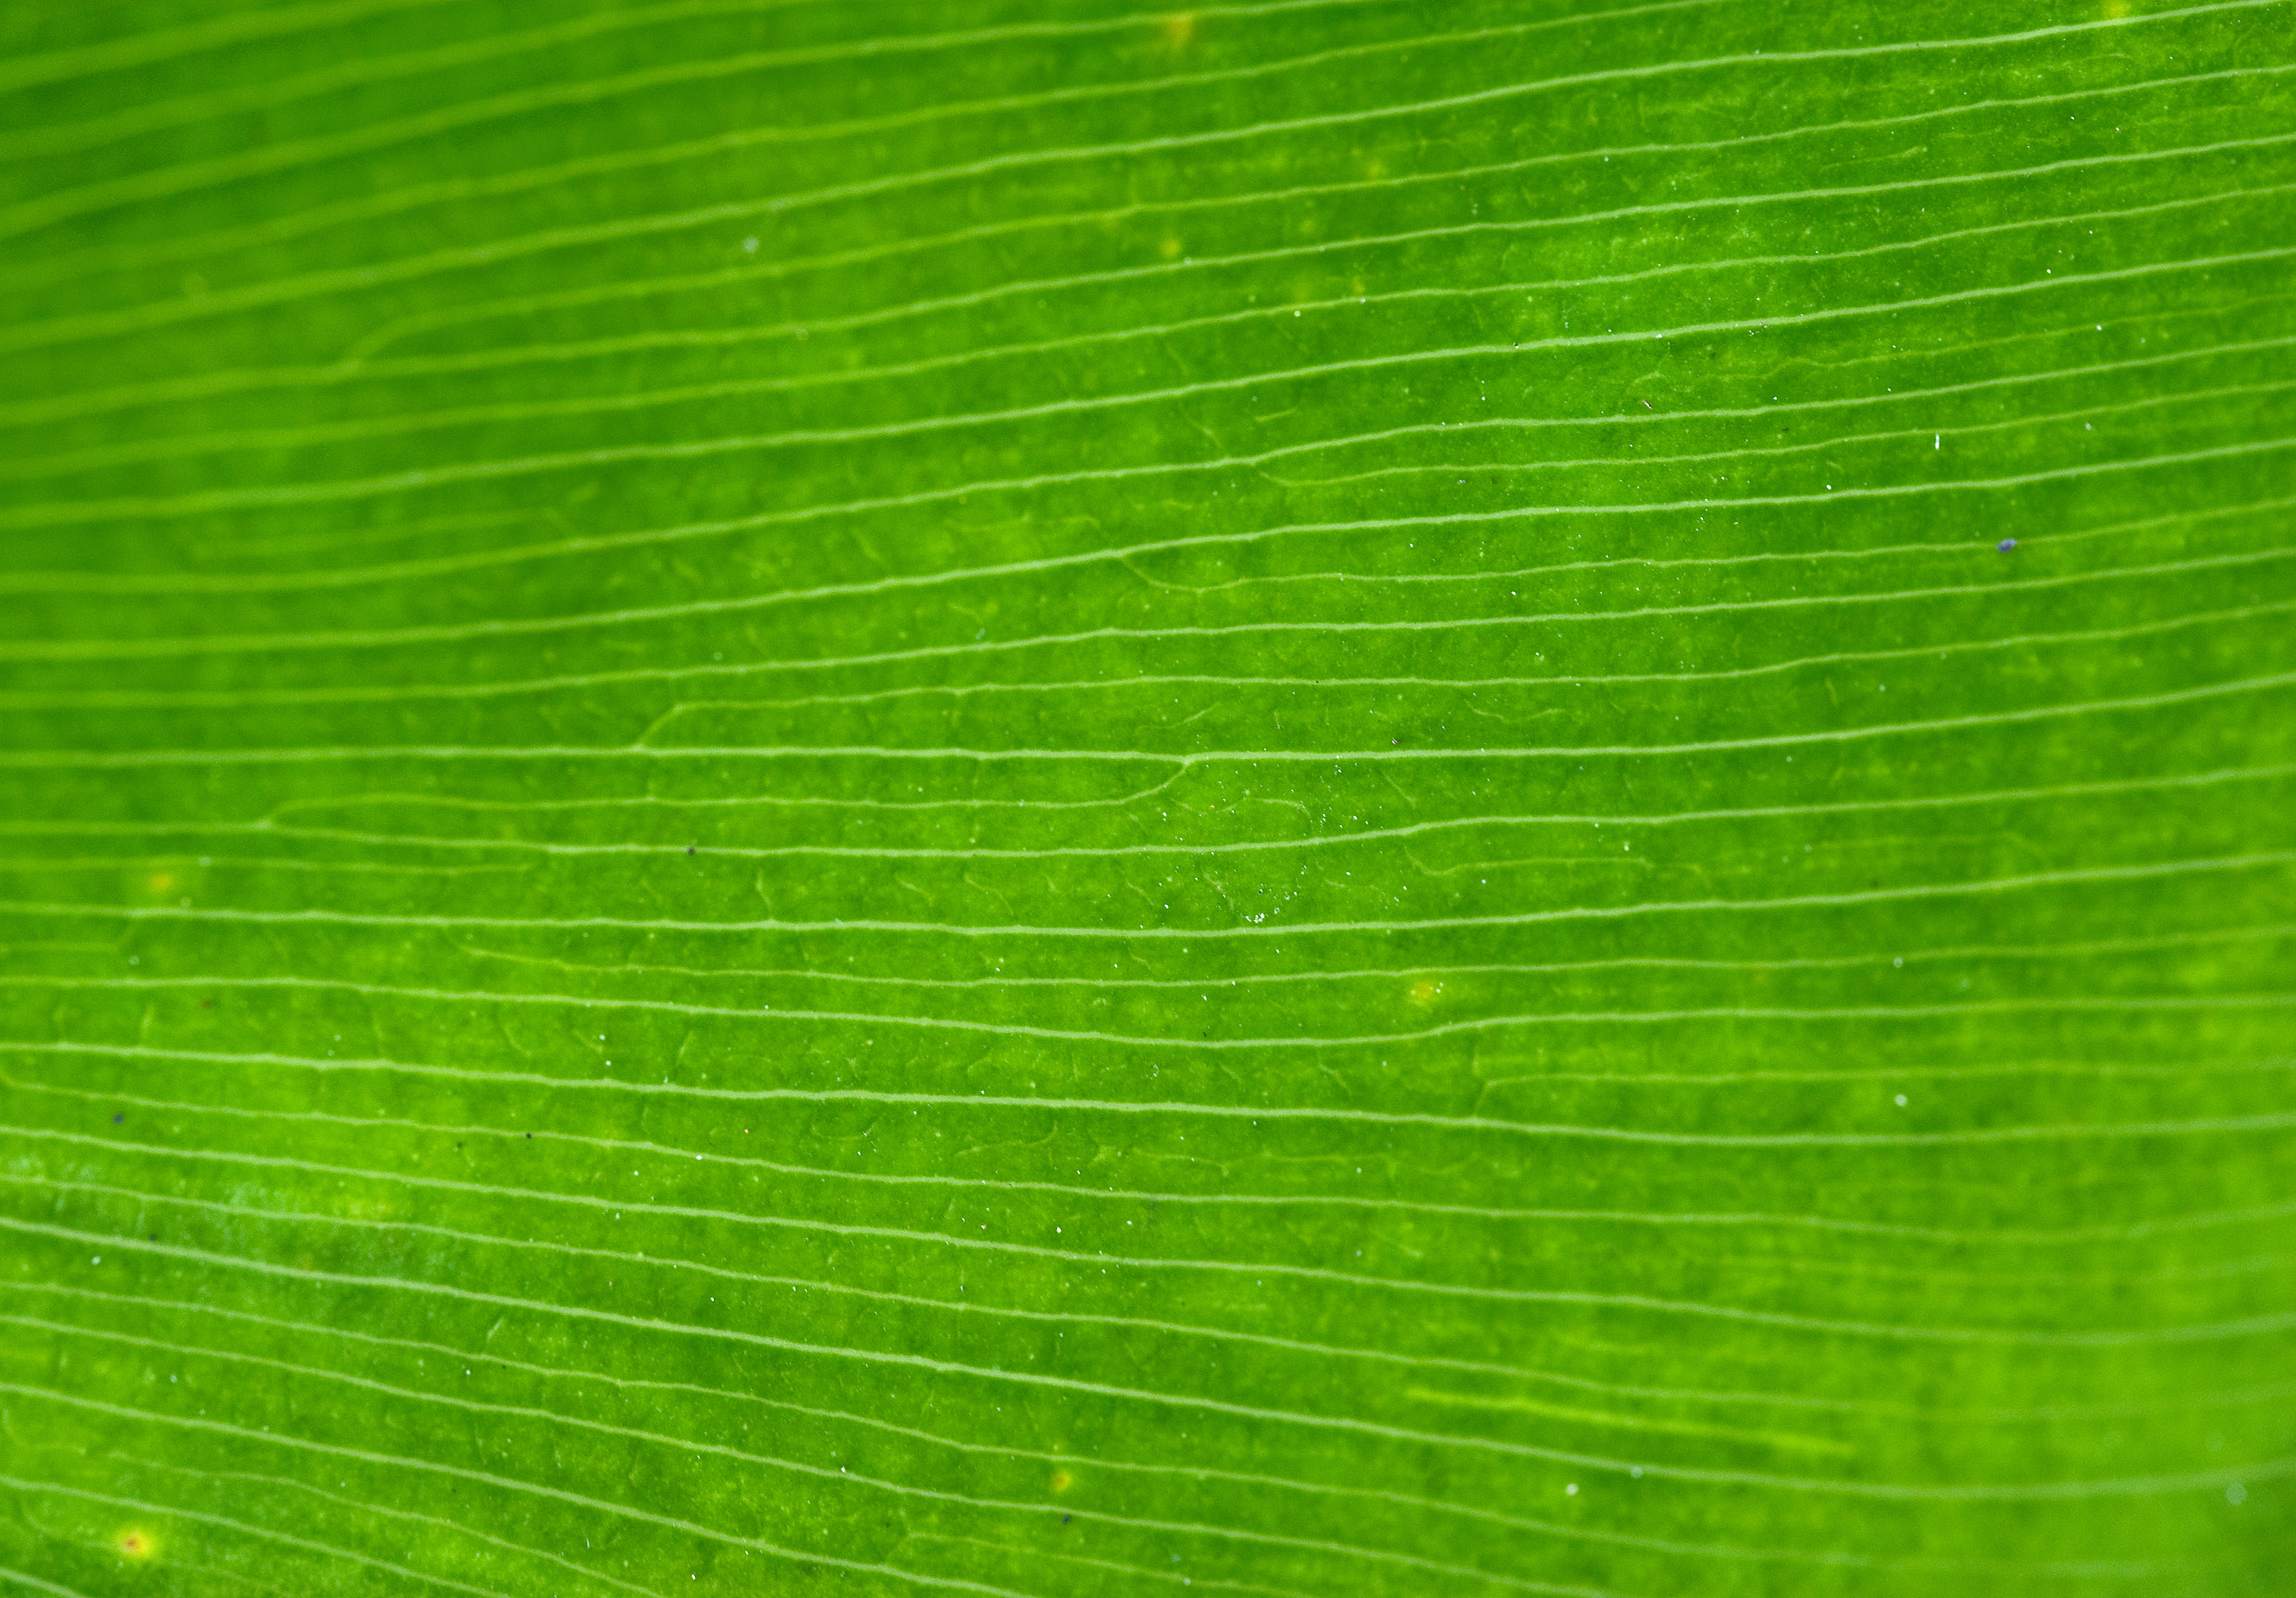 leaf green, texture, photo, background, download, green leaf texture